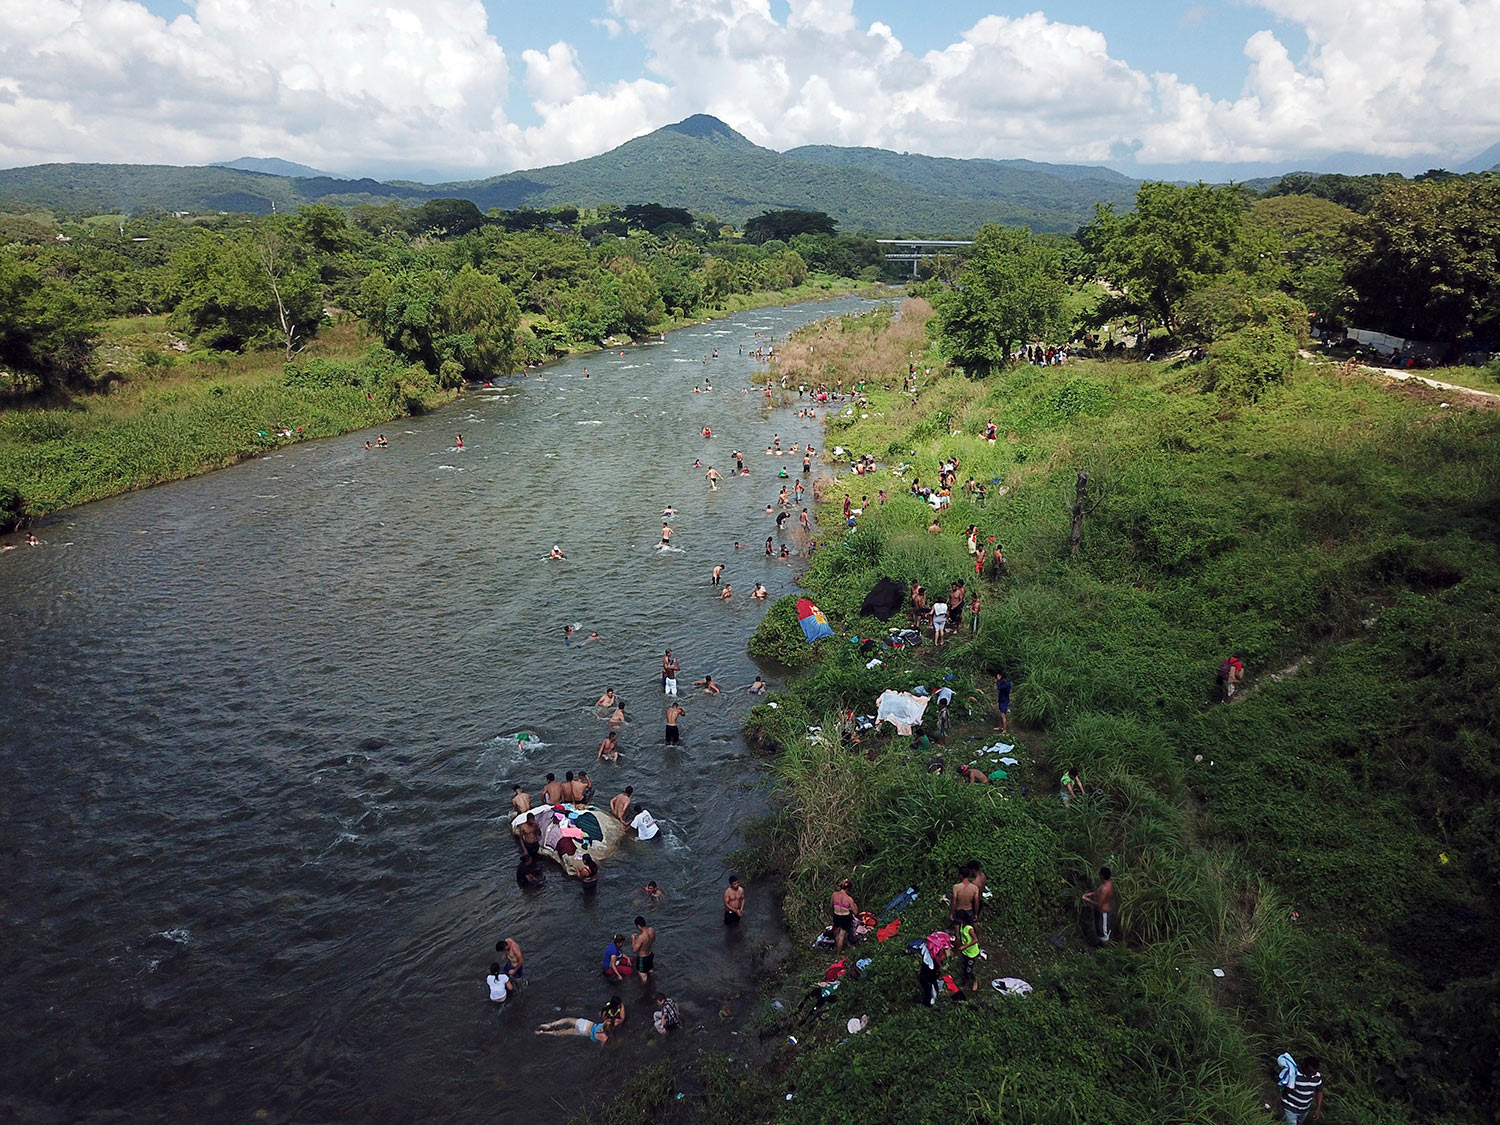 Honduran migrants take a bath in a river in Pijijiapan, Mexico, Thursday, Oct. 25, 2018. (AP Photo/Rodrigo Abd)